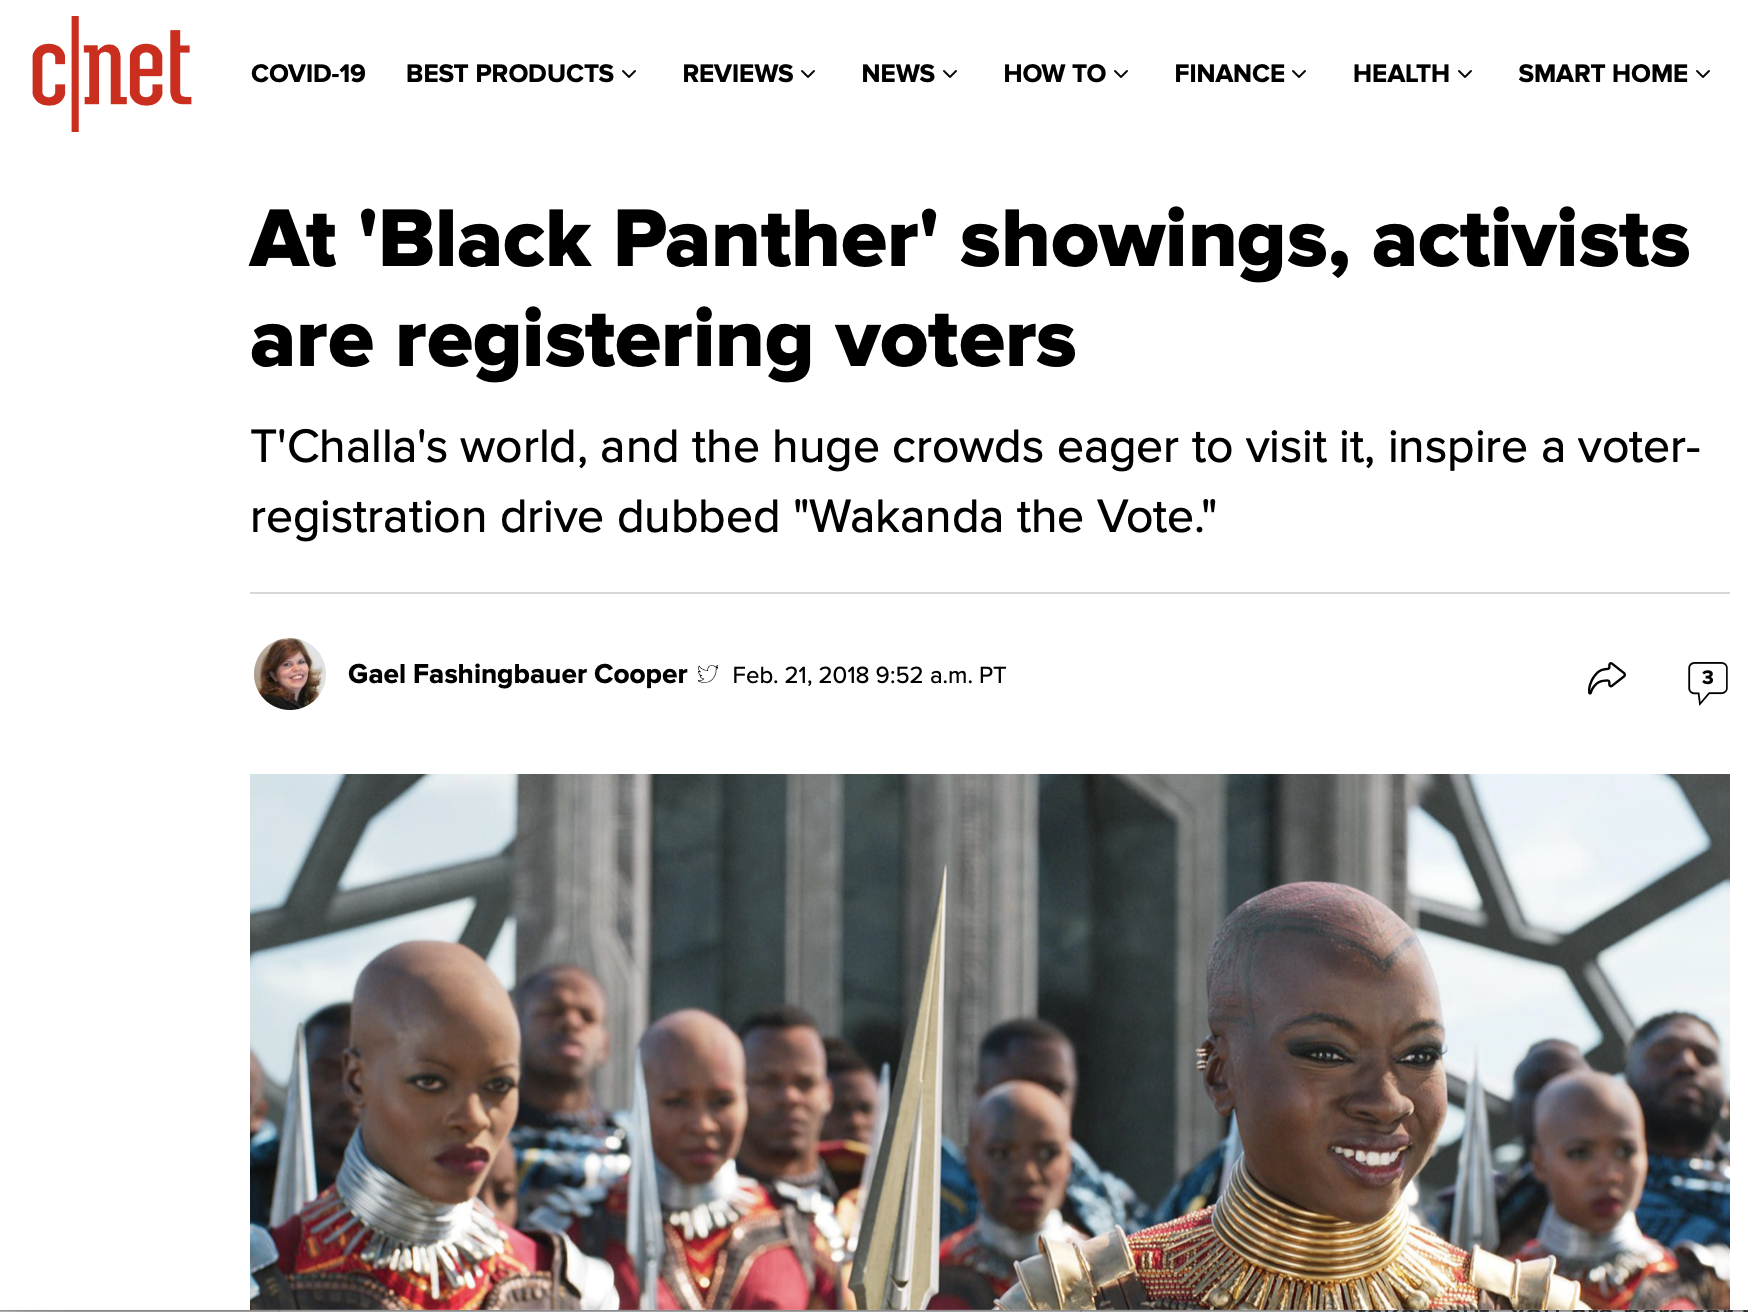 At 'Black Panther' showings, activists are registering voters